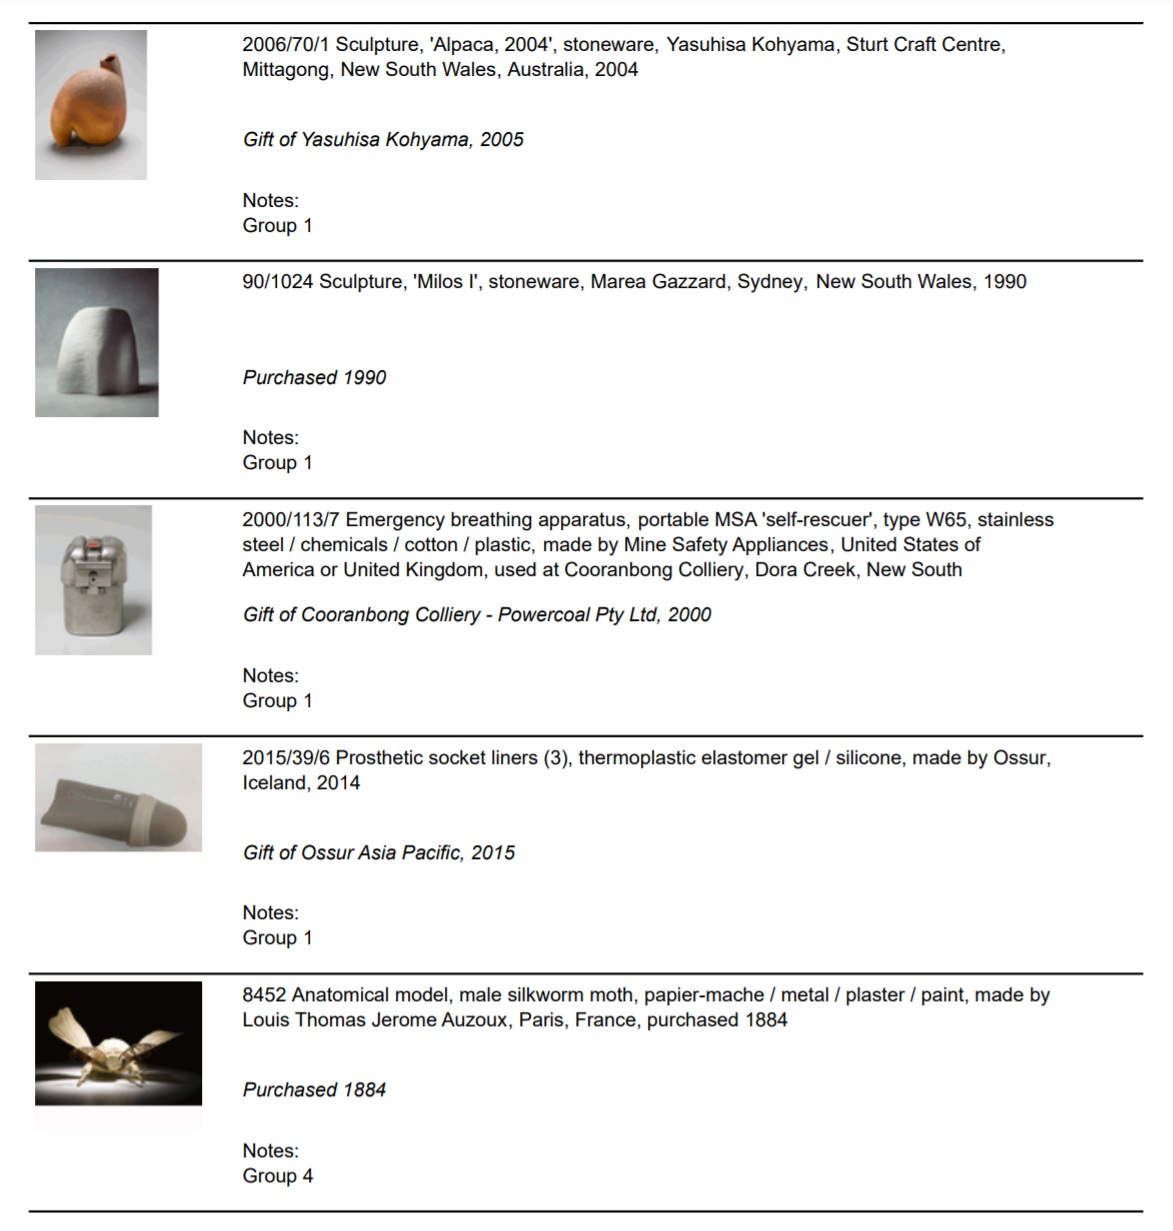 A screenshot of a pdf showing a sample from the object list in the format for distribution amongst the project team. The pdf shows an image, object details and source/credit line information for 5 objects including ceramic artworks, an emergency breathing apparatus, a silicone prosthetic socket liner and an anatomical model of a silkworm moth